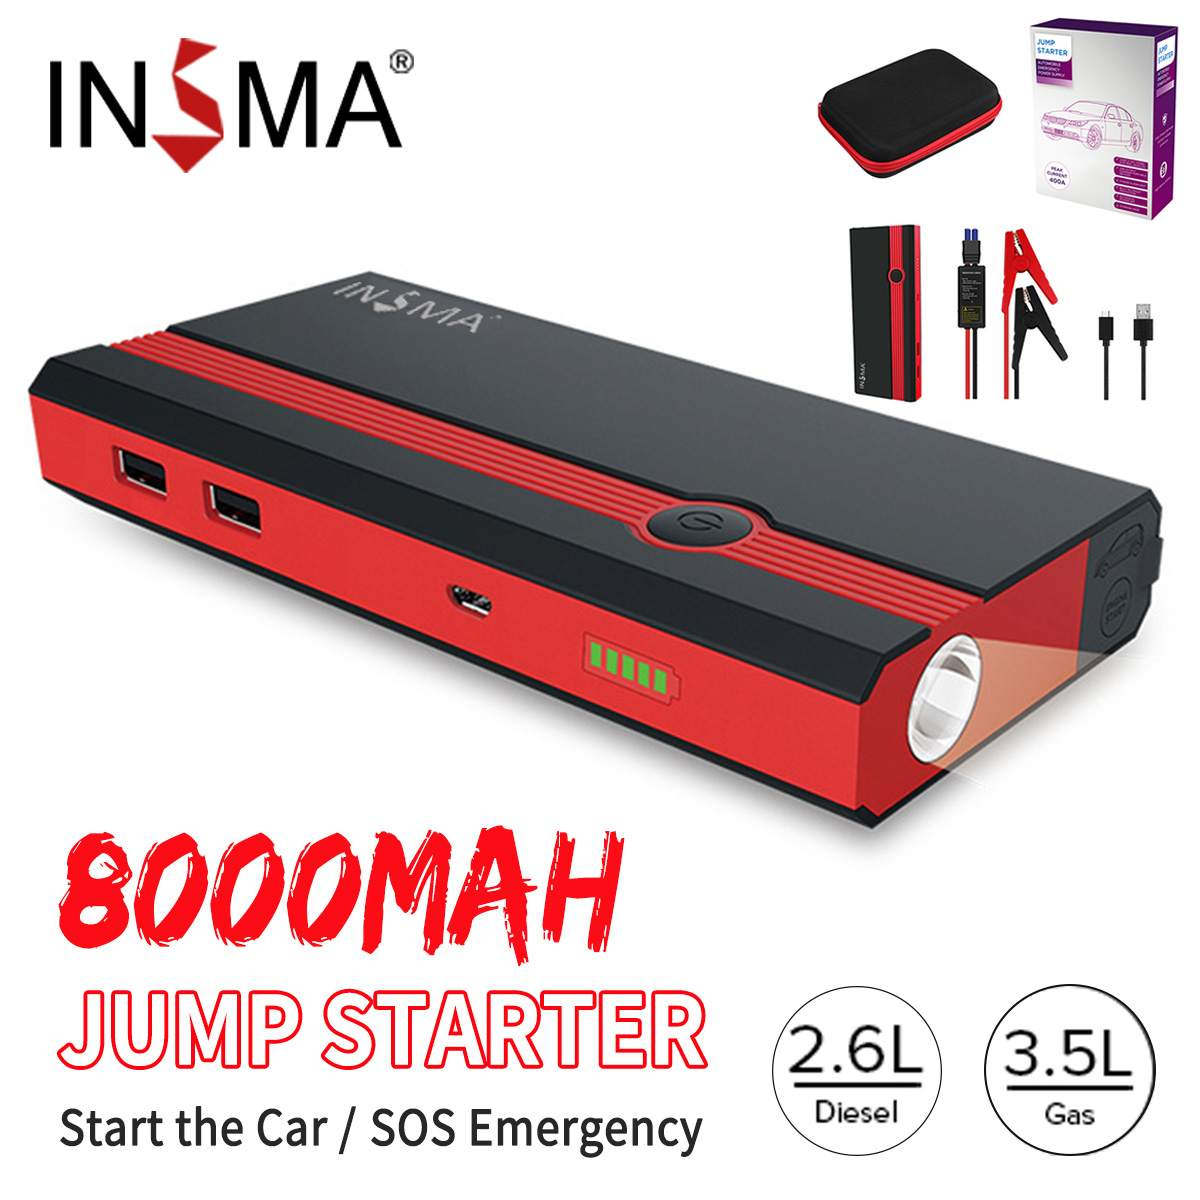 INSMA 99900mAh 12V <font><b>Car</b></font> Jump Starter Start Booster Portable USB <font><b>Charger</b></font> Power Bank Pack Emergency <font><b>Battery</b></font> Jumper Survival Kit image